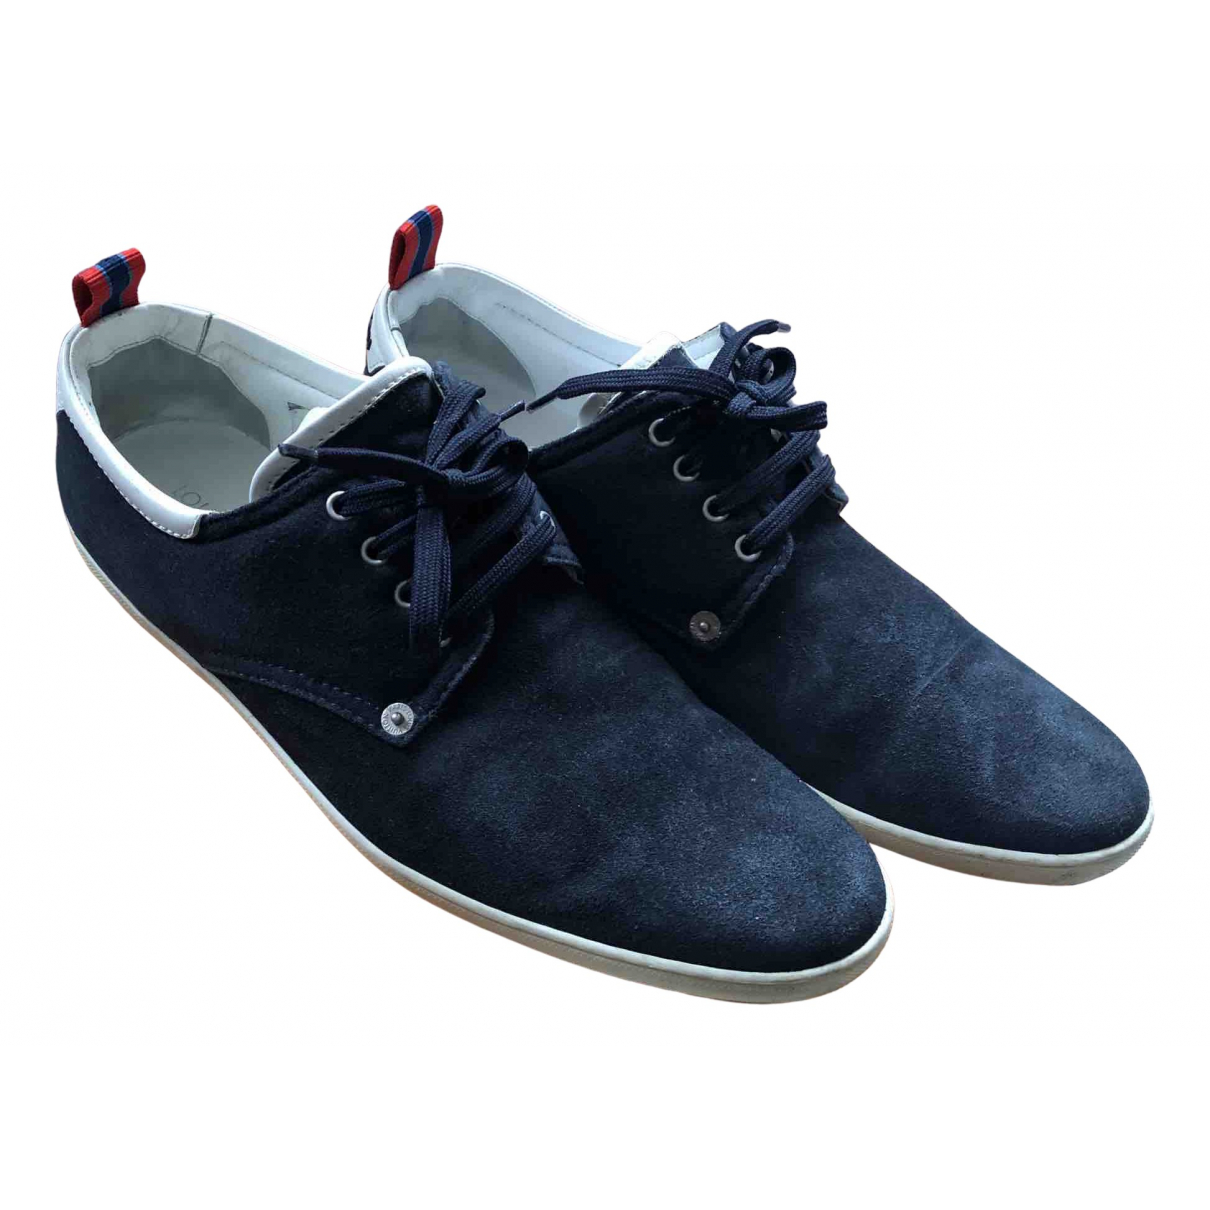 Louis Vuitton N Navy Suede Trainers for Men 43 EU